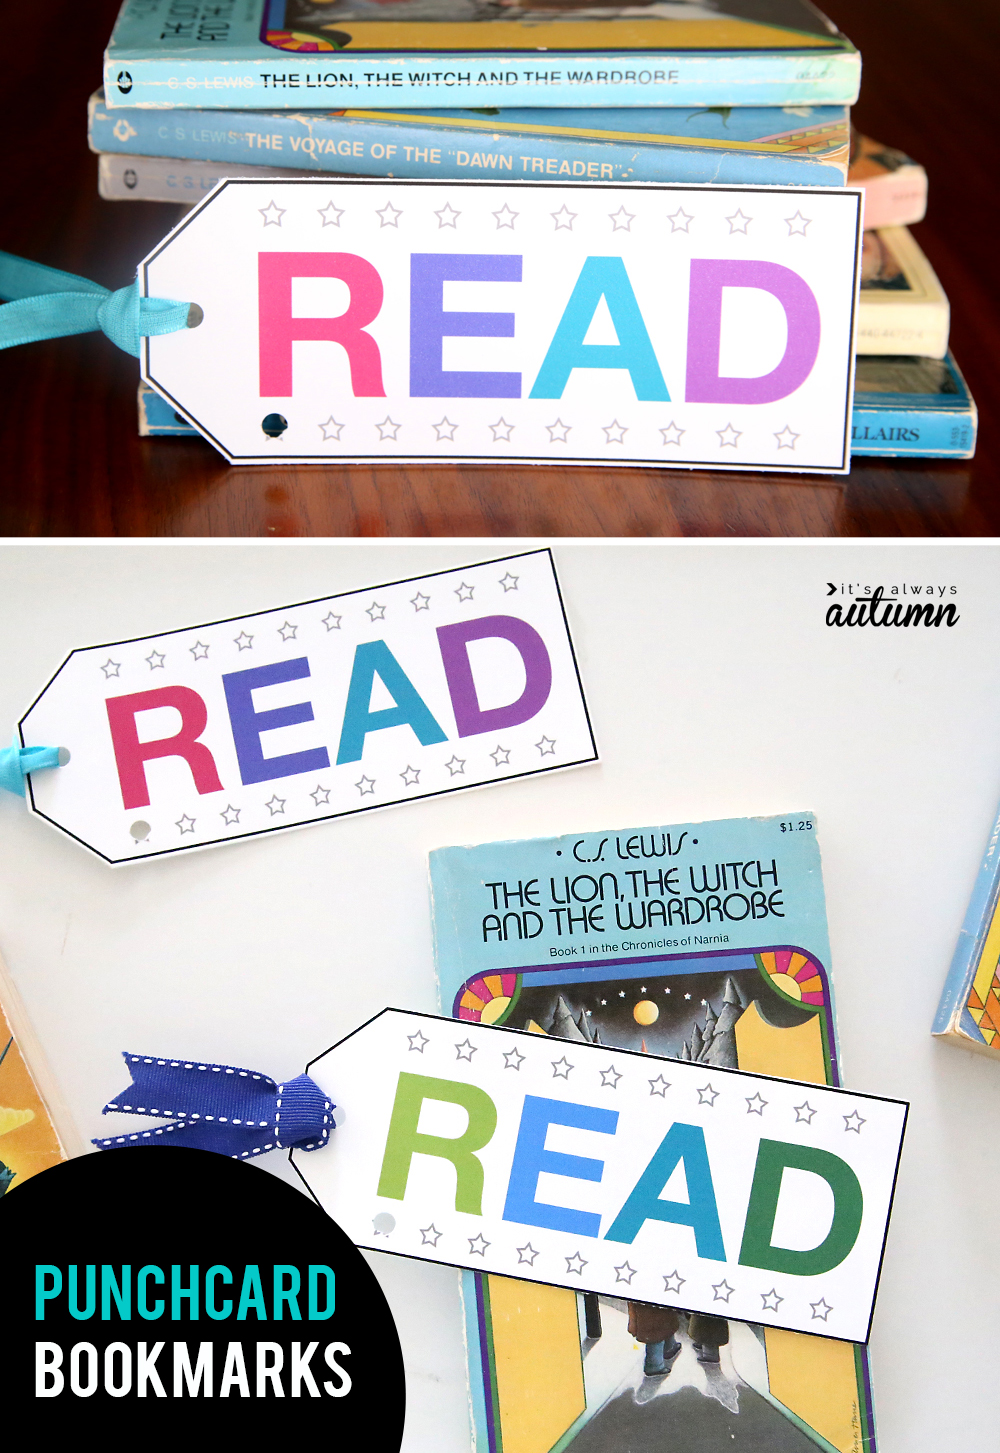 These printable punchcard bookmarks are a great way to track and encourage reading minutes!